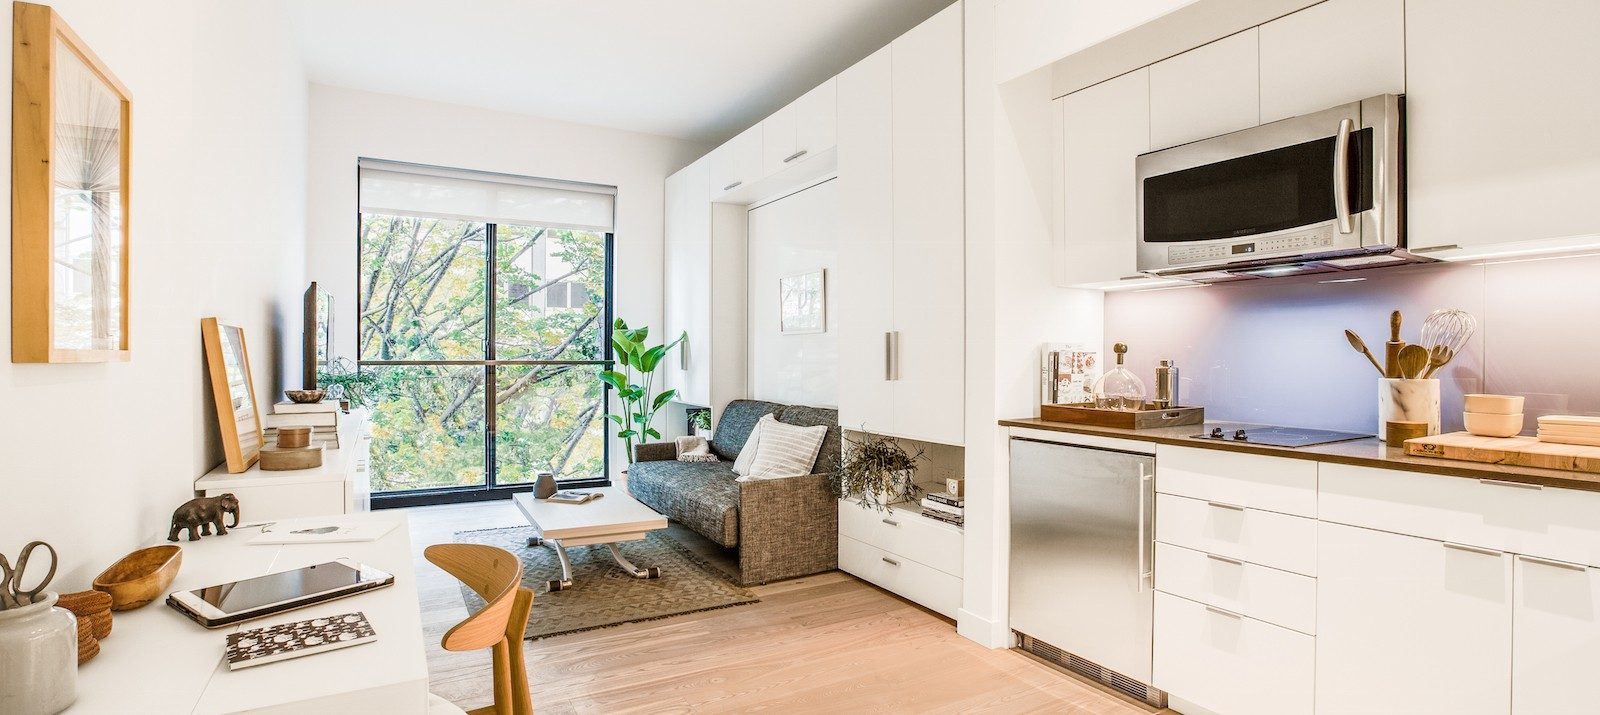 The clean, minimal, and furnished interior of Carmel Place, NYC's first micro-apartment building, which is located at 335 E 27th St in Kips Bay, Manhattan.